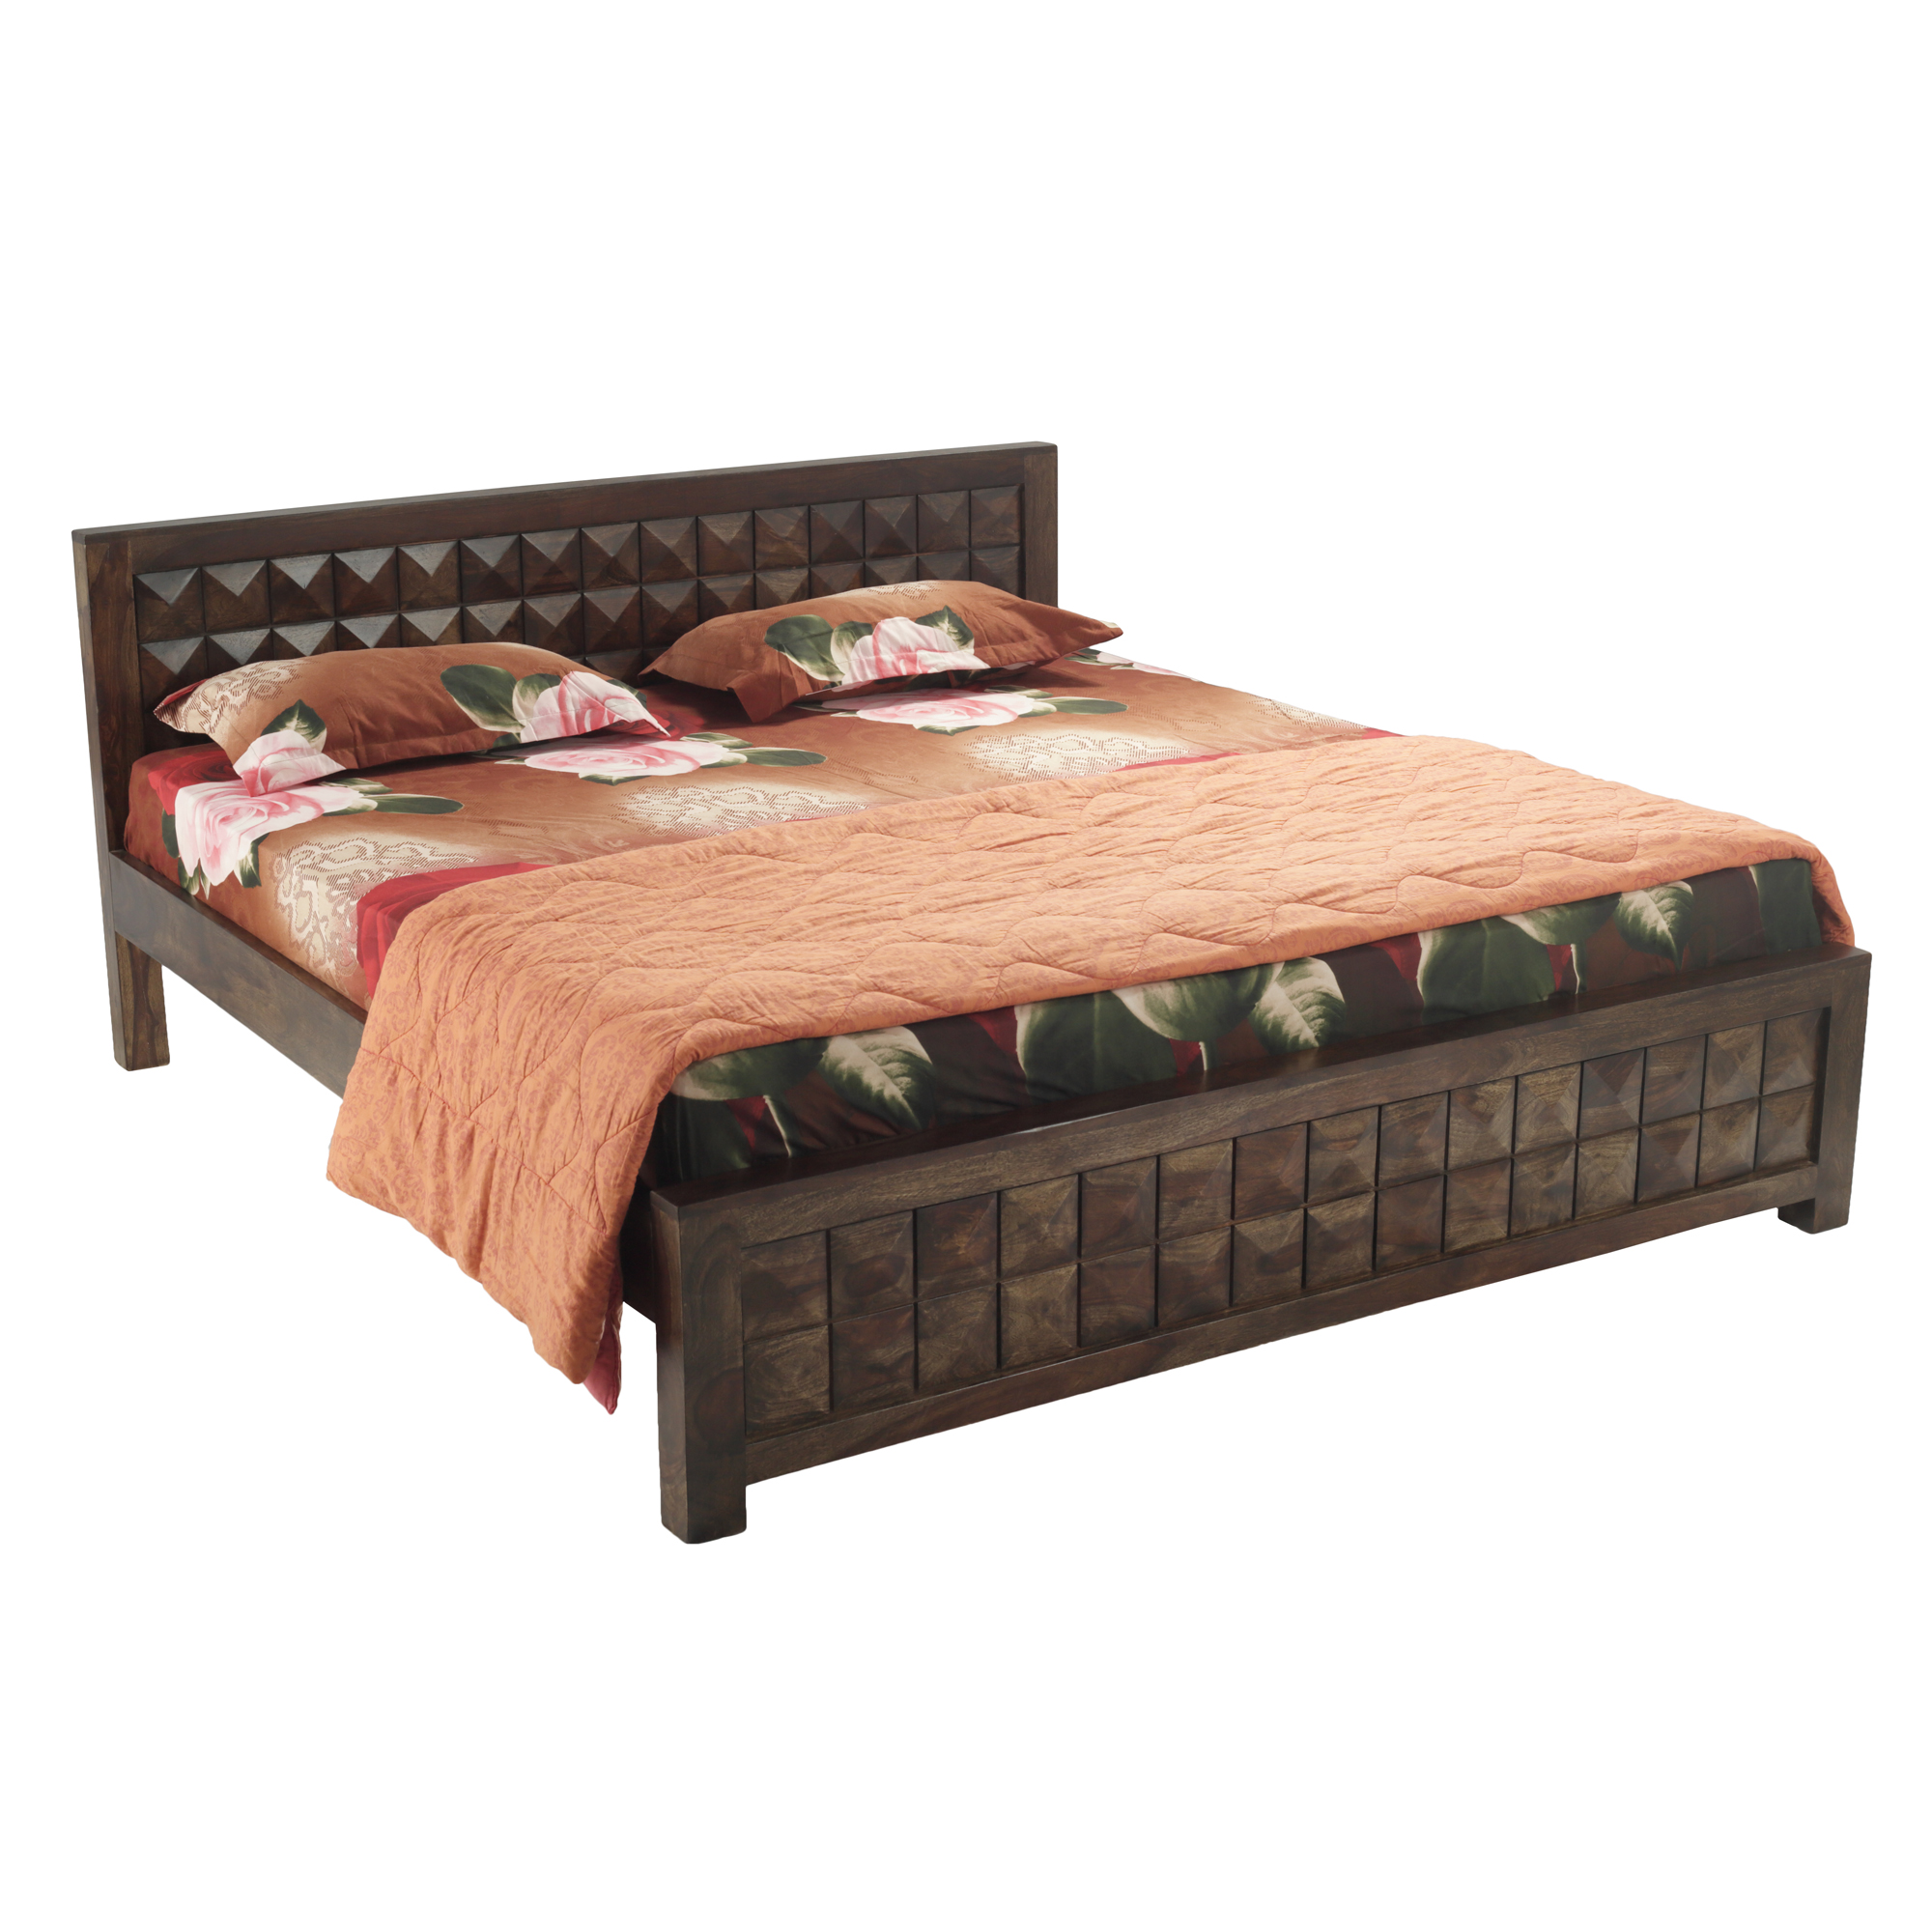 Eiffel Solid Wood King Size Bed in Provincial Teak Finish